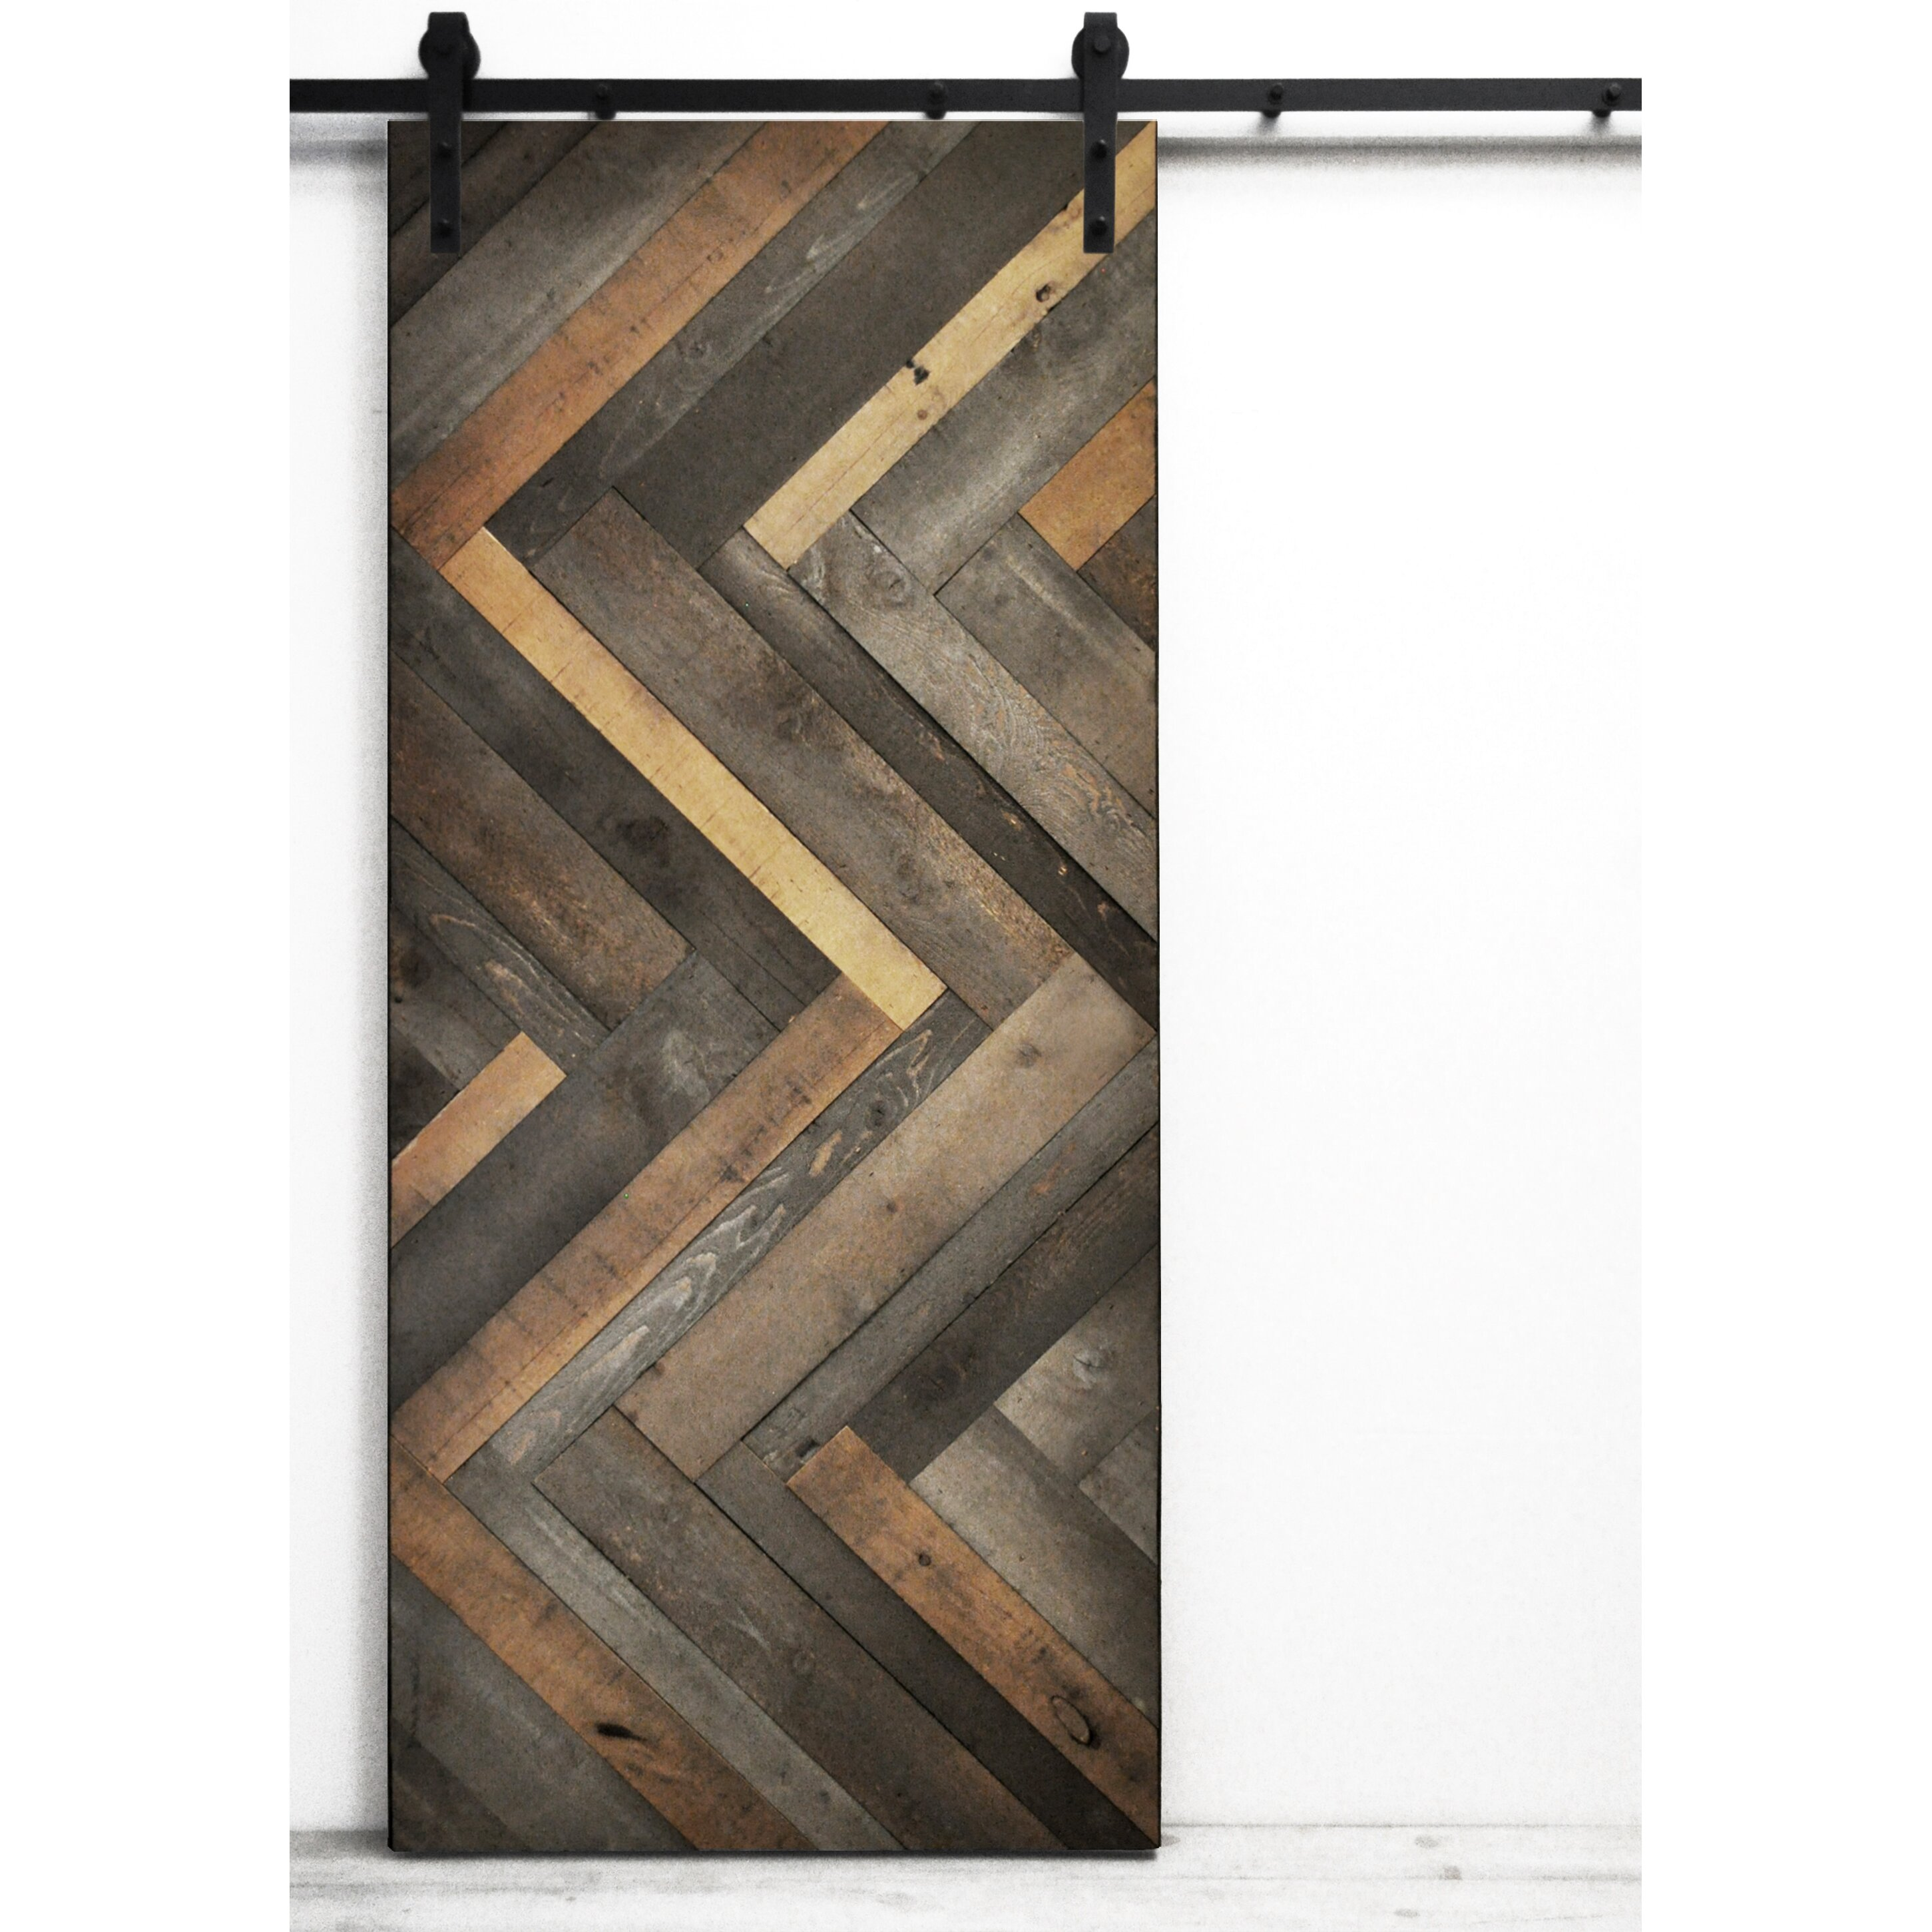 Crib hardware for sale - Dogberry Collections Herringbone Wood Lacquer Stained Interior Barn